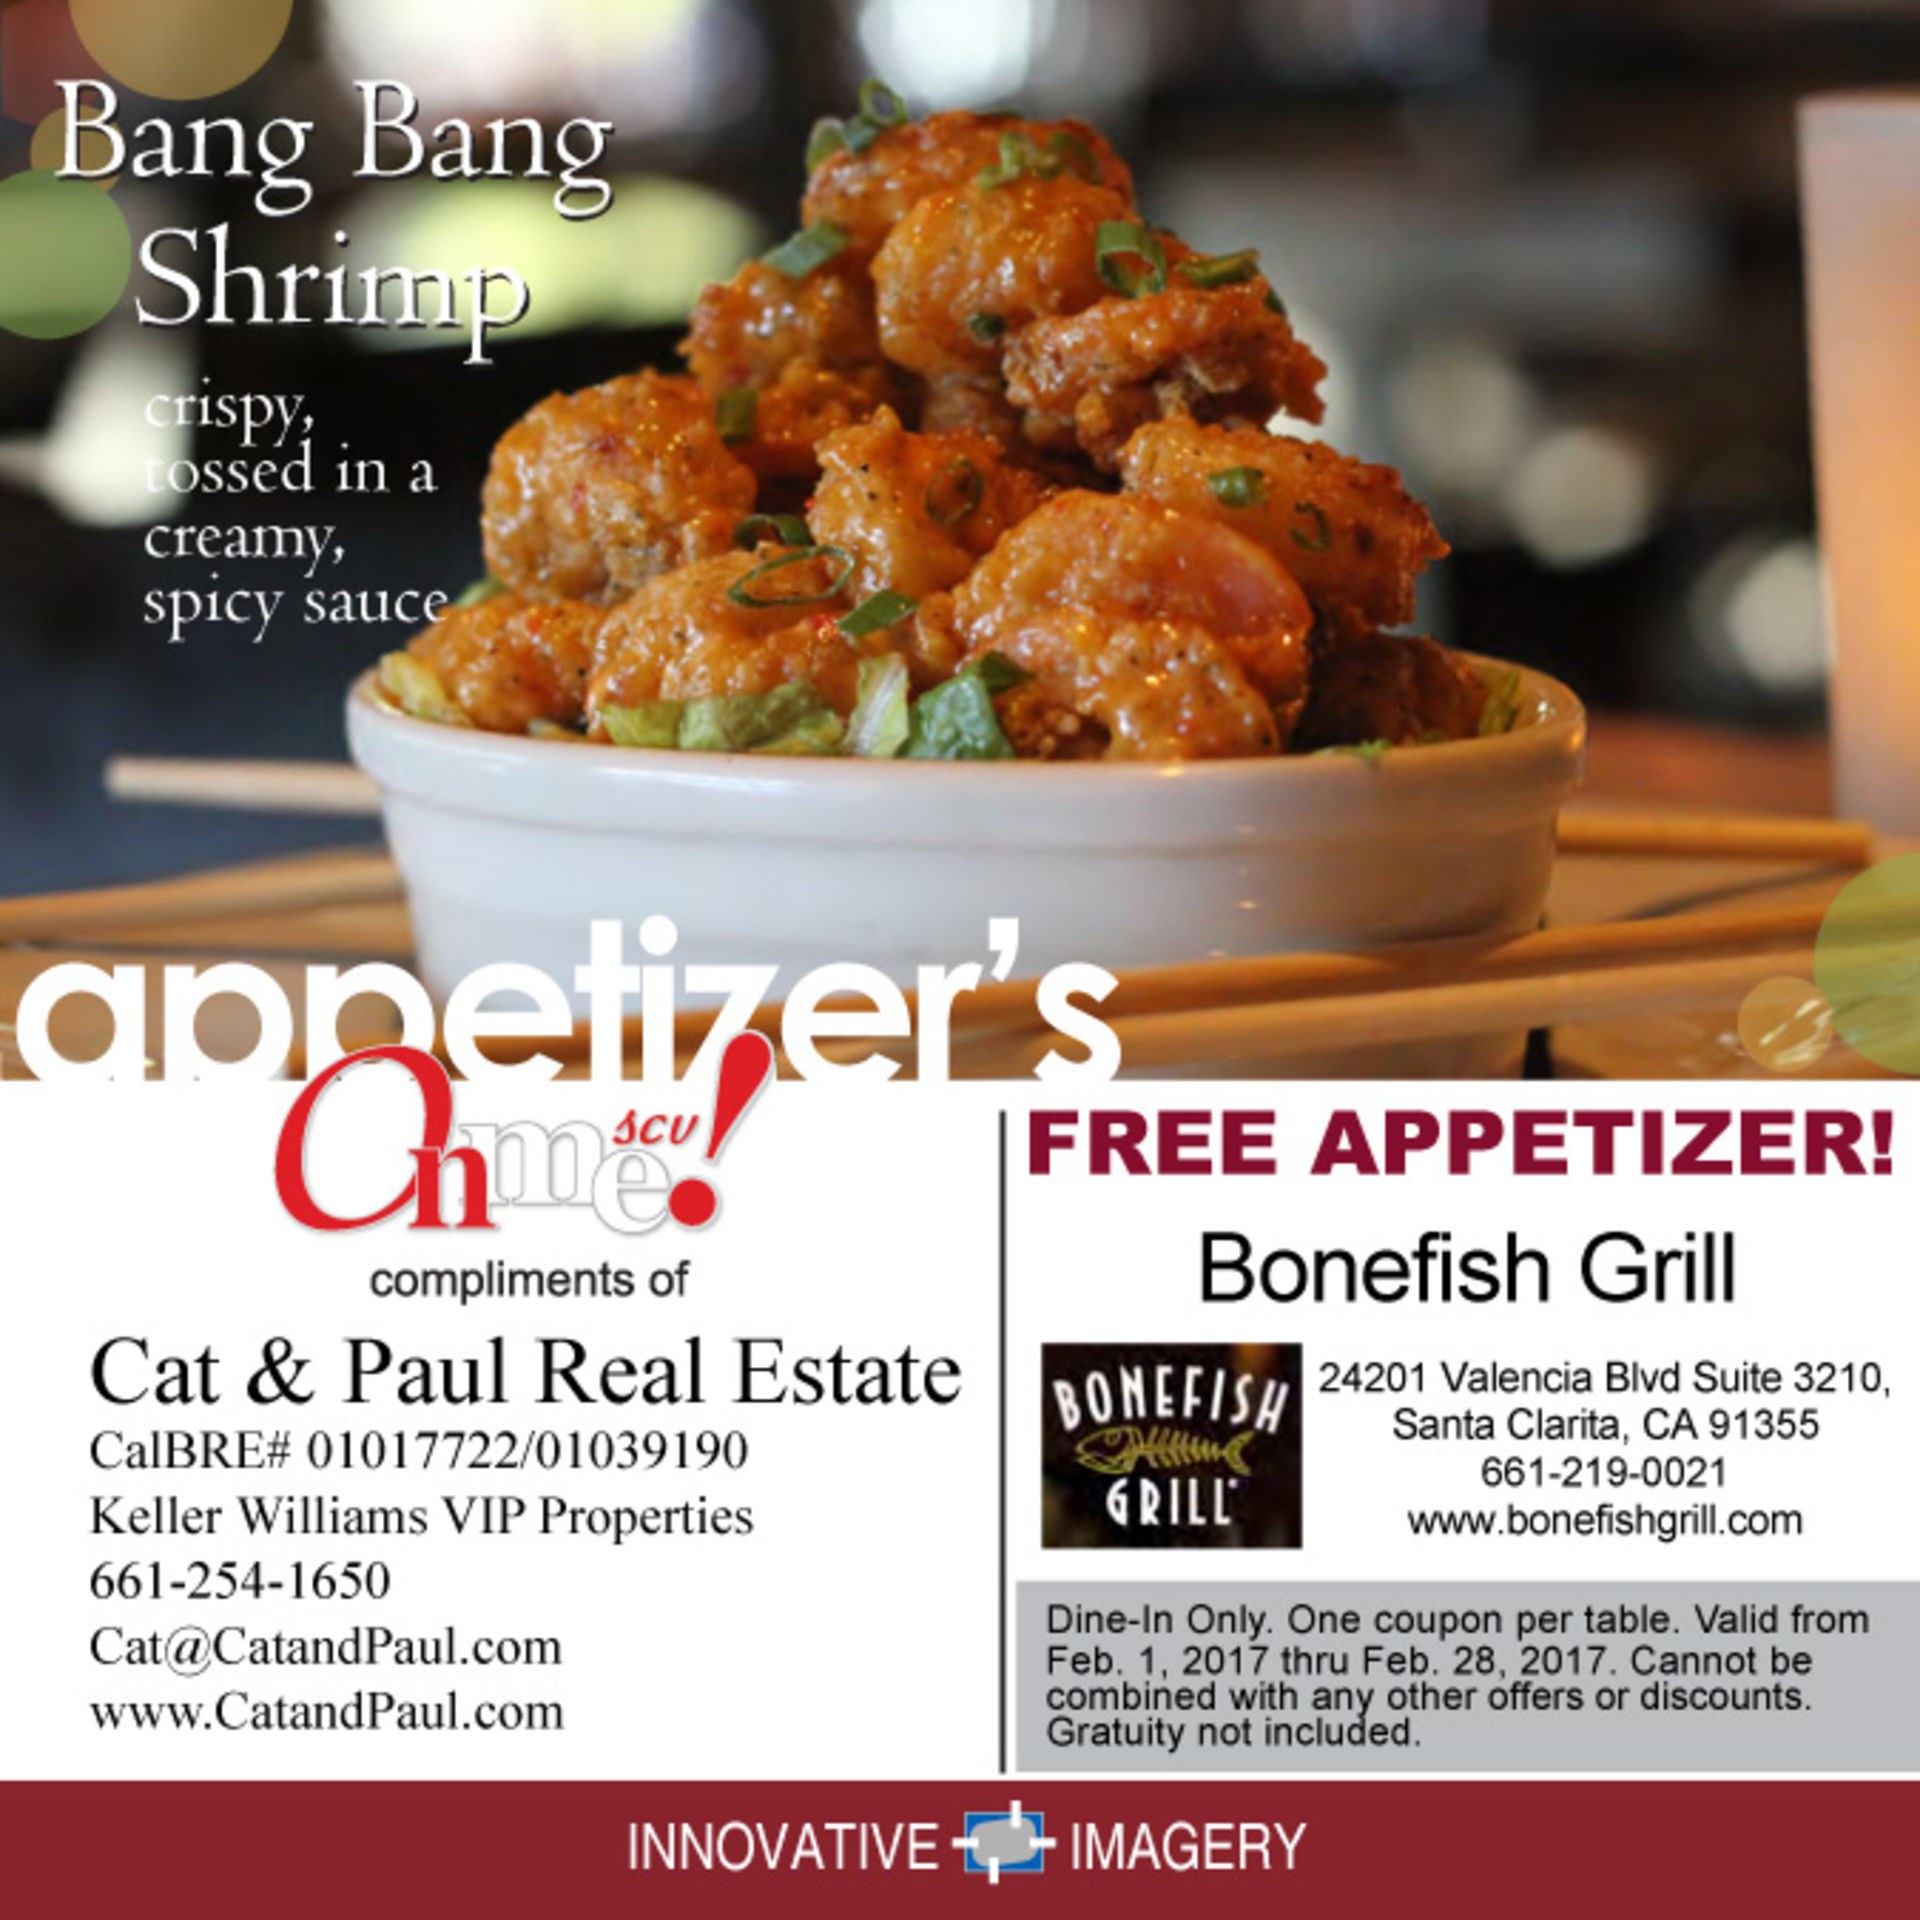 Bonefish Grill Free Appetizer Coupon February 2017